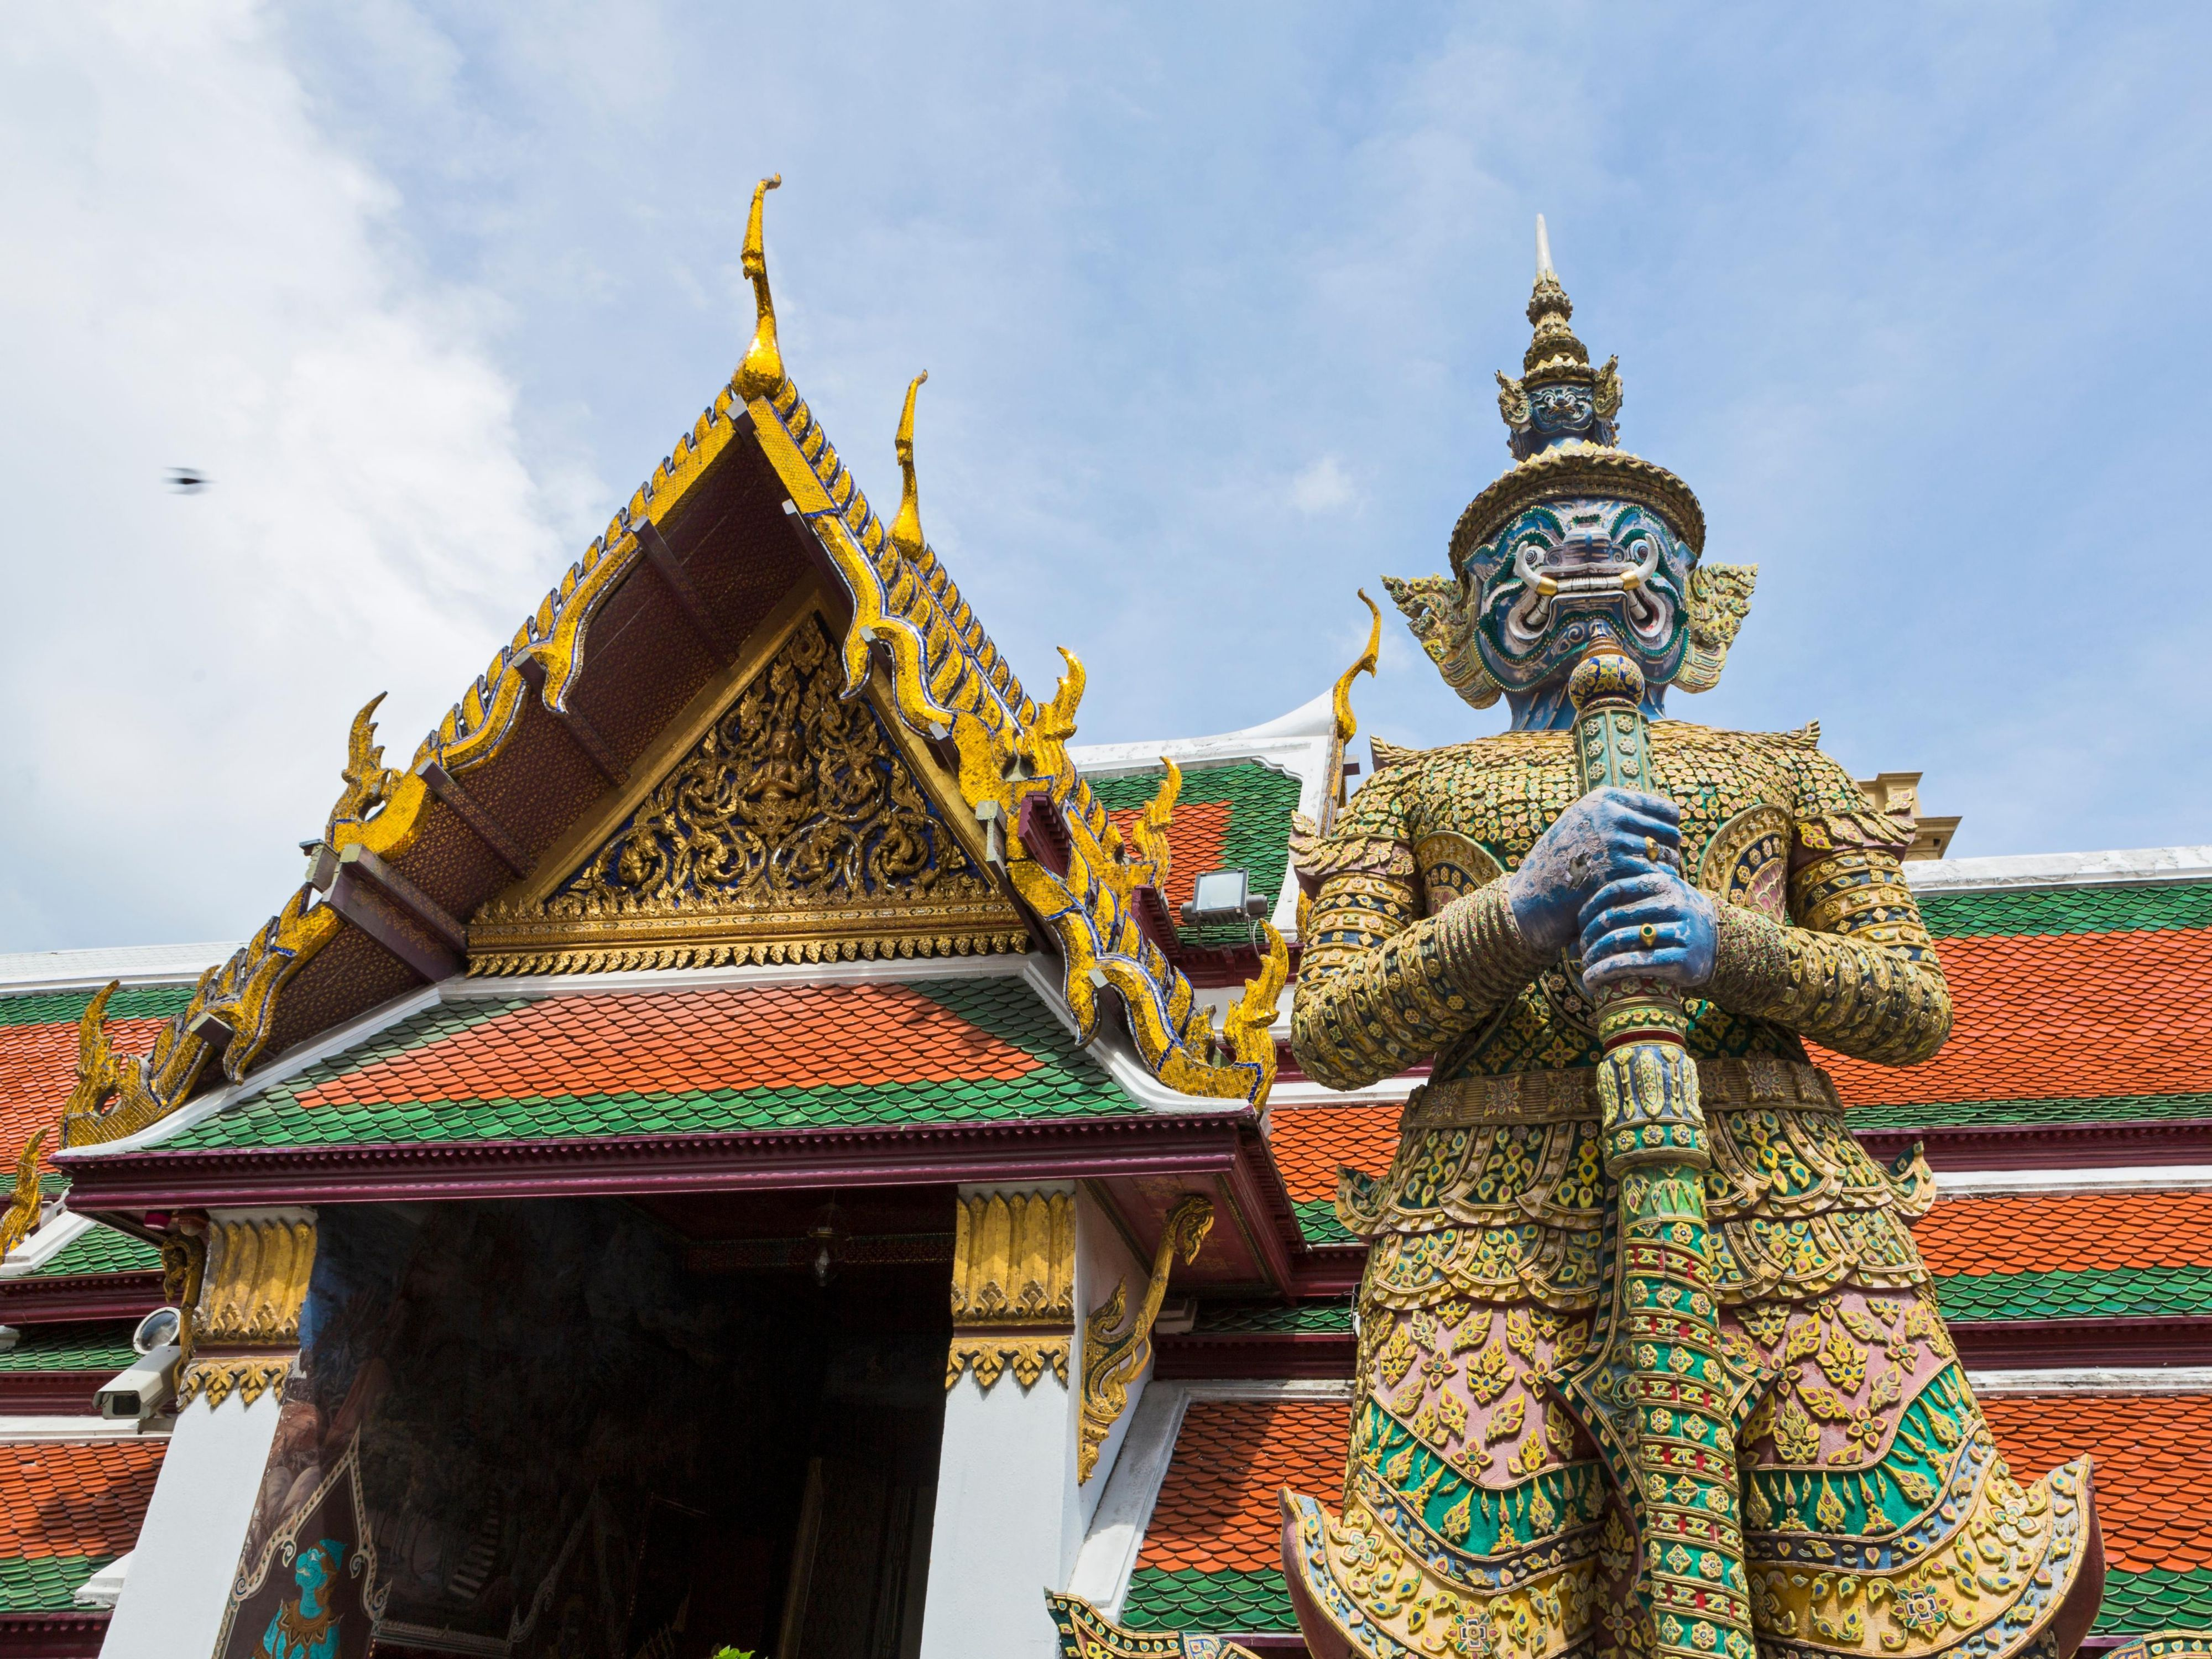 Area Attractions - Mythical Giant at Temple of the Emerald Buddha